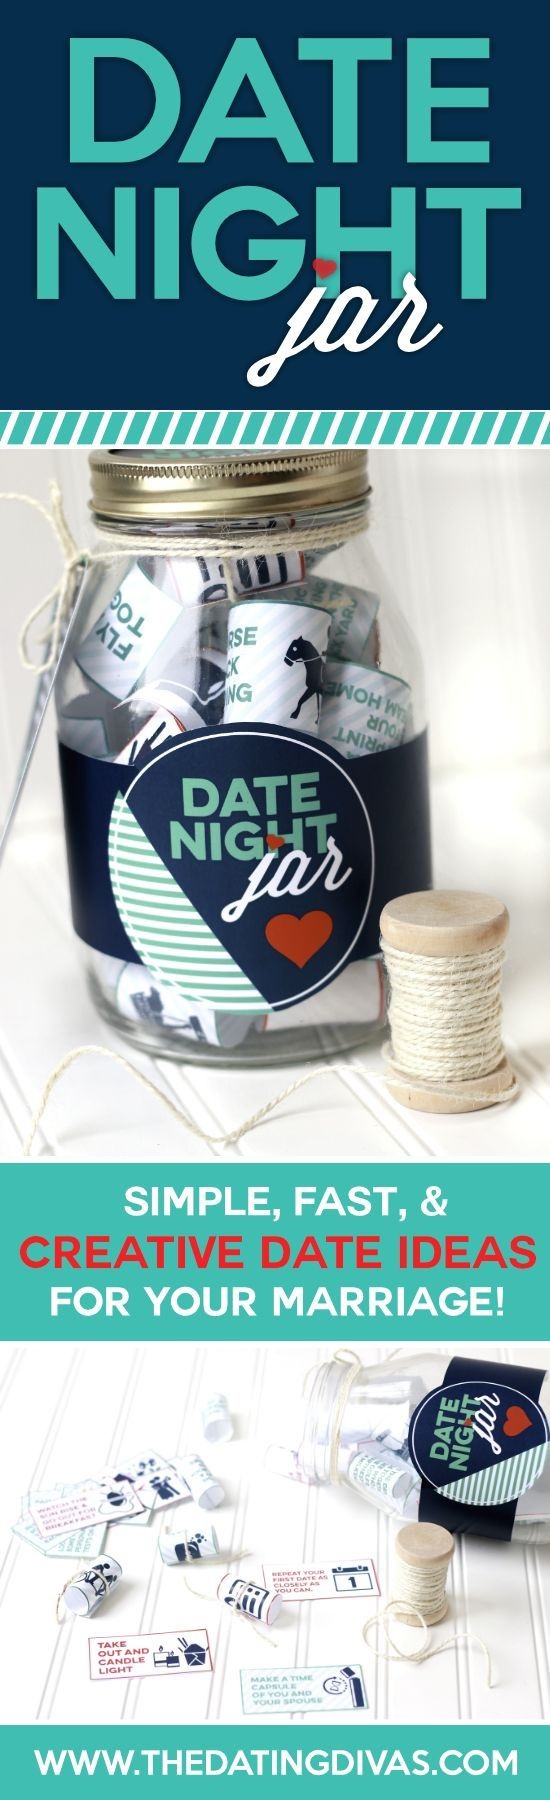 Perfect Valentine's Gift idea- a Date Night Jar! Never run out of ideas.  Darling printables created by www.cutifycreative.com for www.thedatingdivas.com